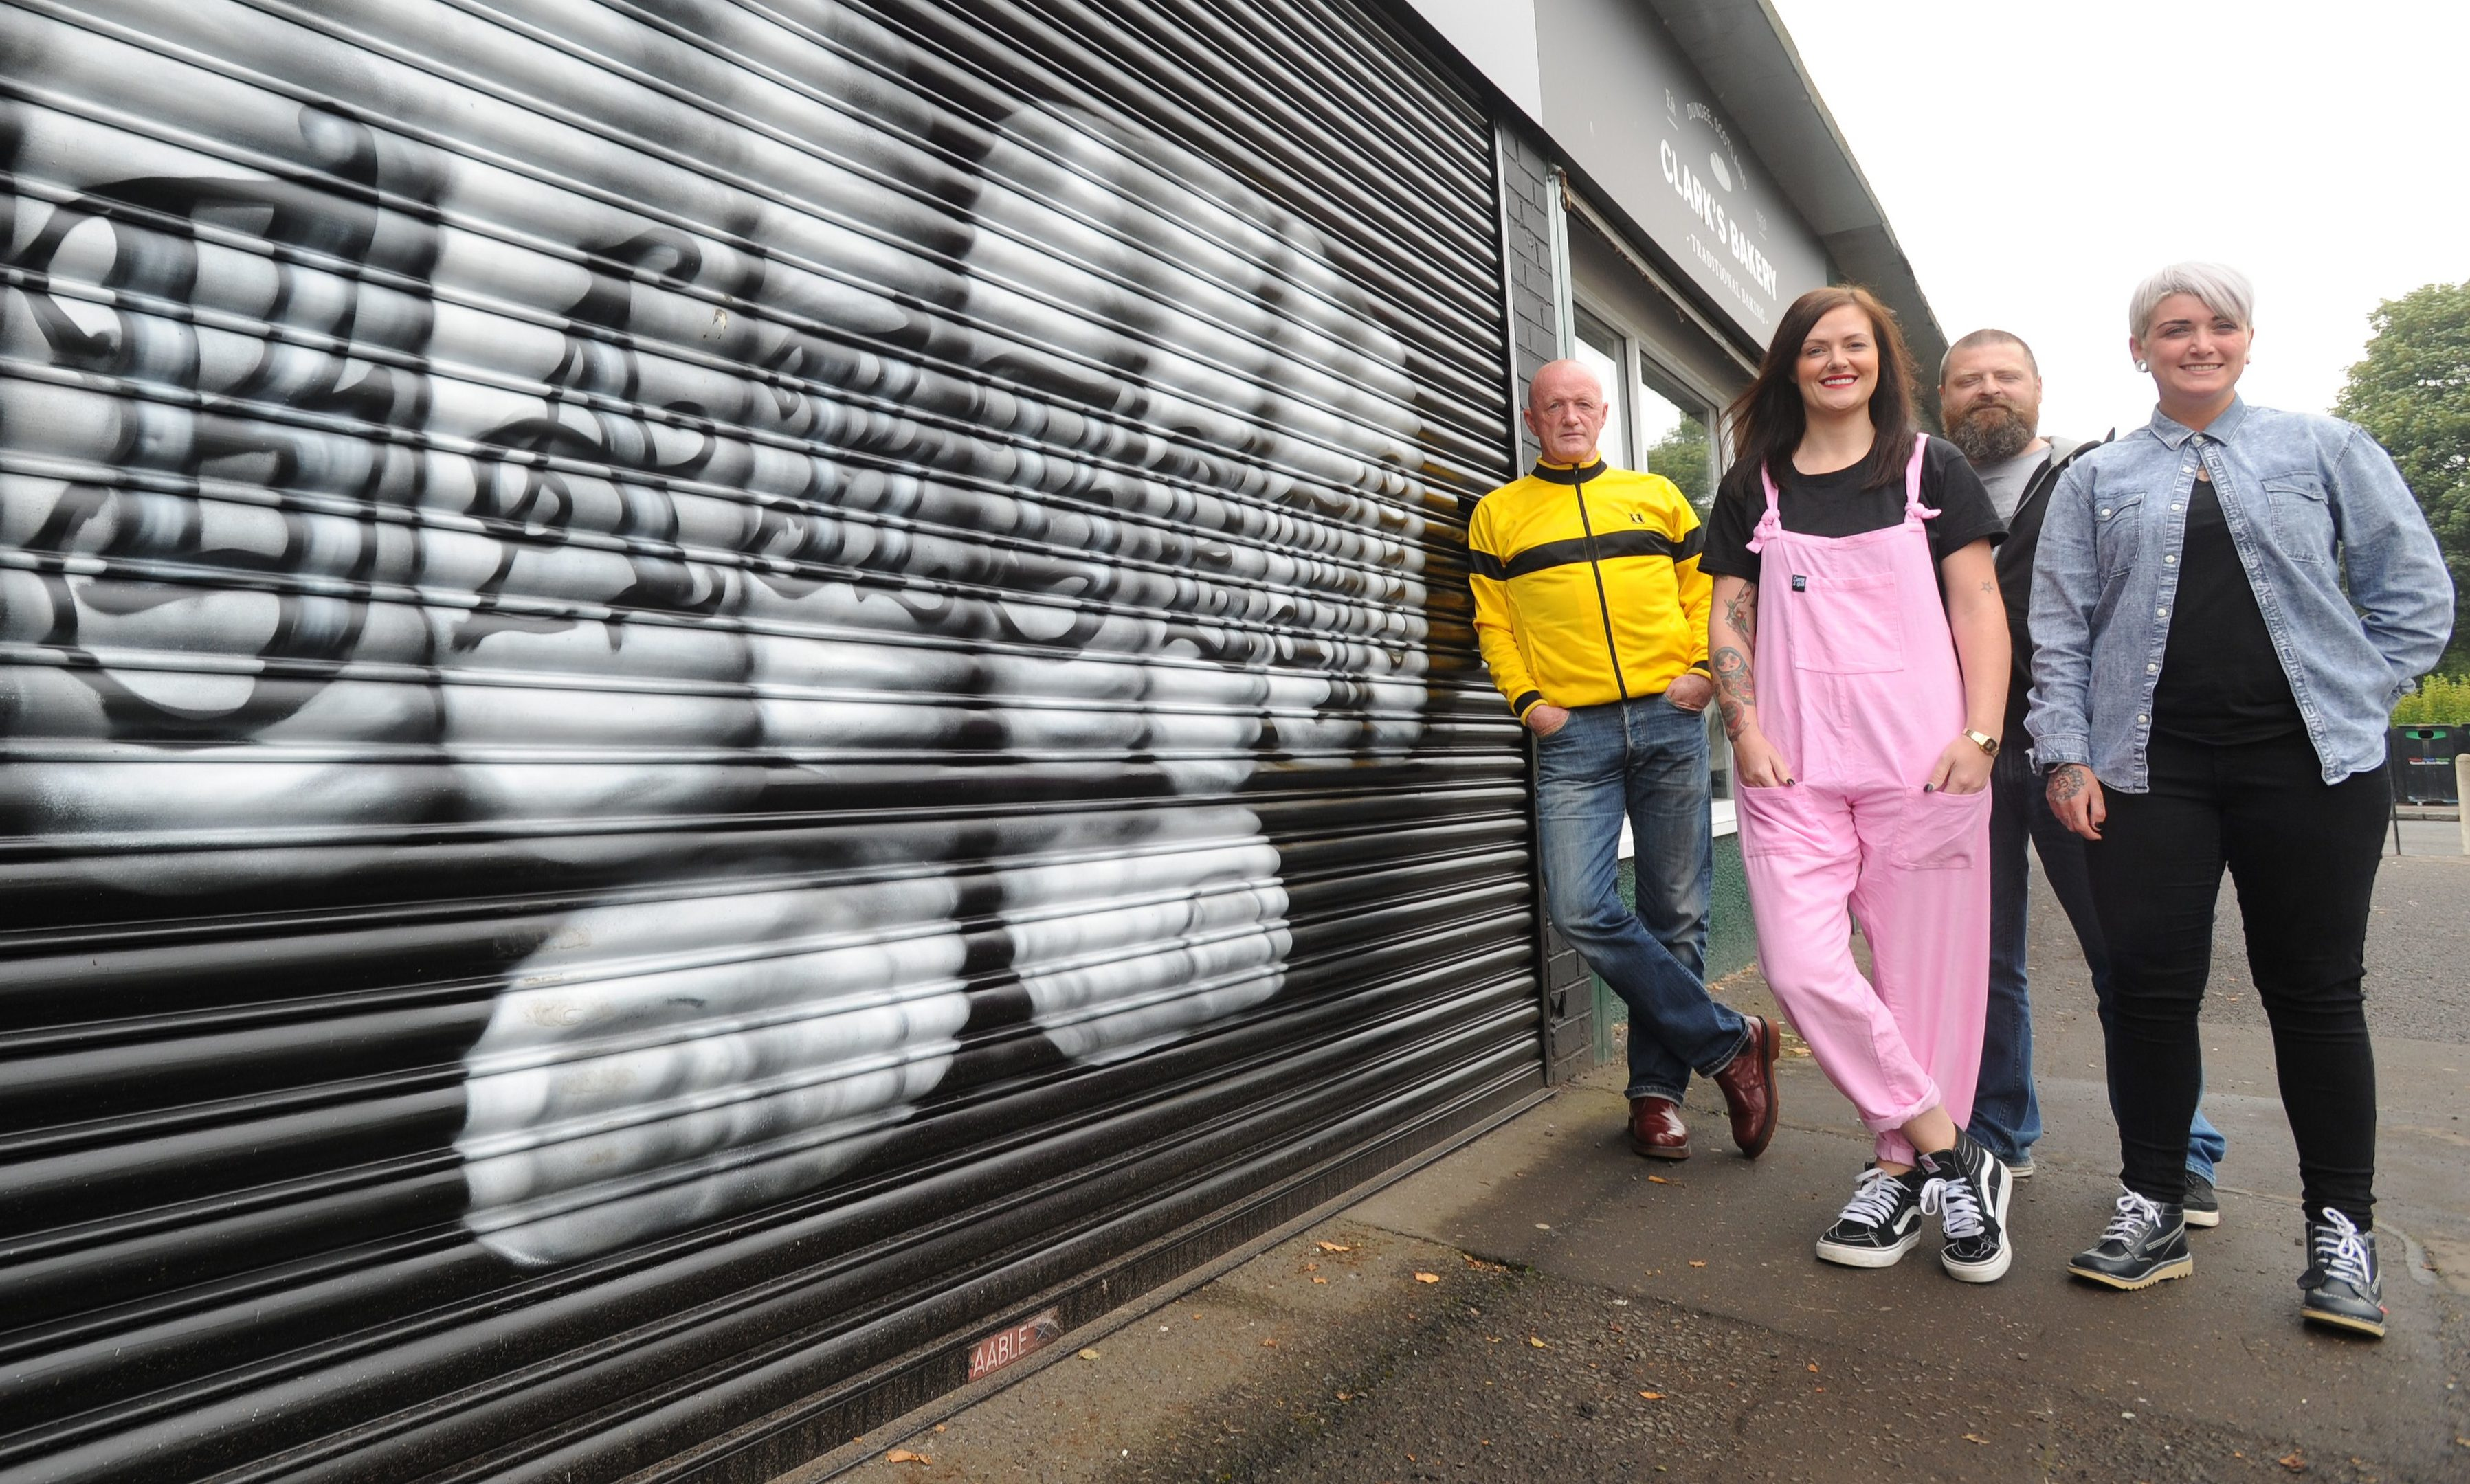 Stobswell street artist Gavin Guyan repainted the shutter doors with an eye-catching pair of knuckles